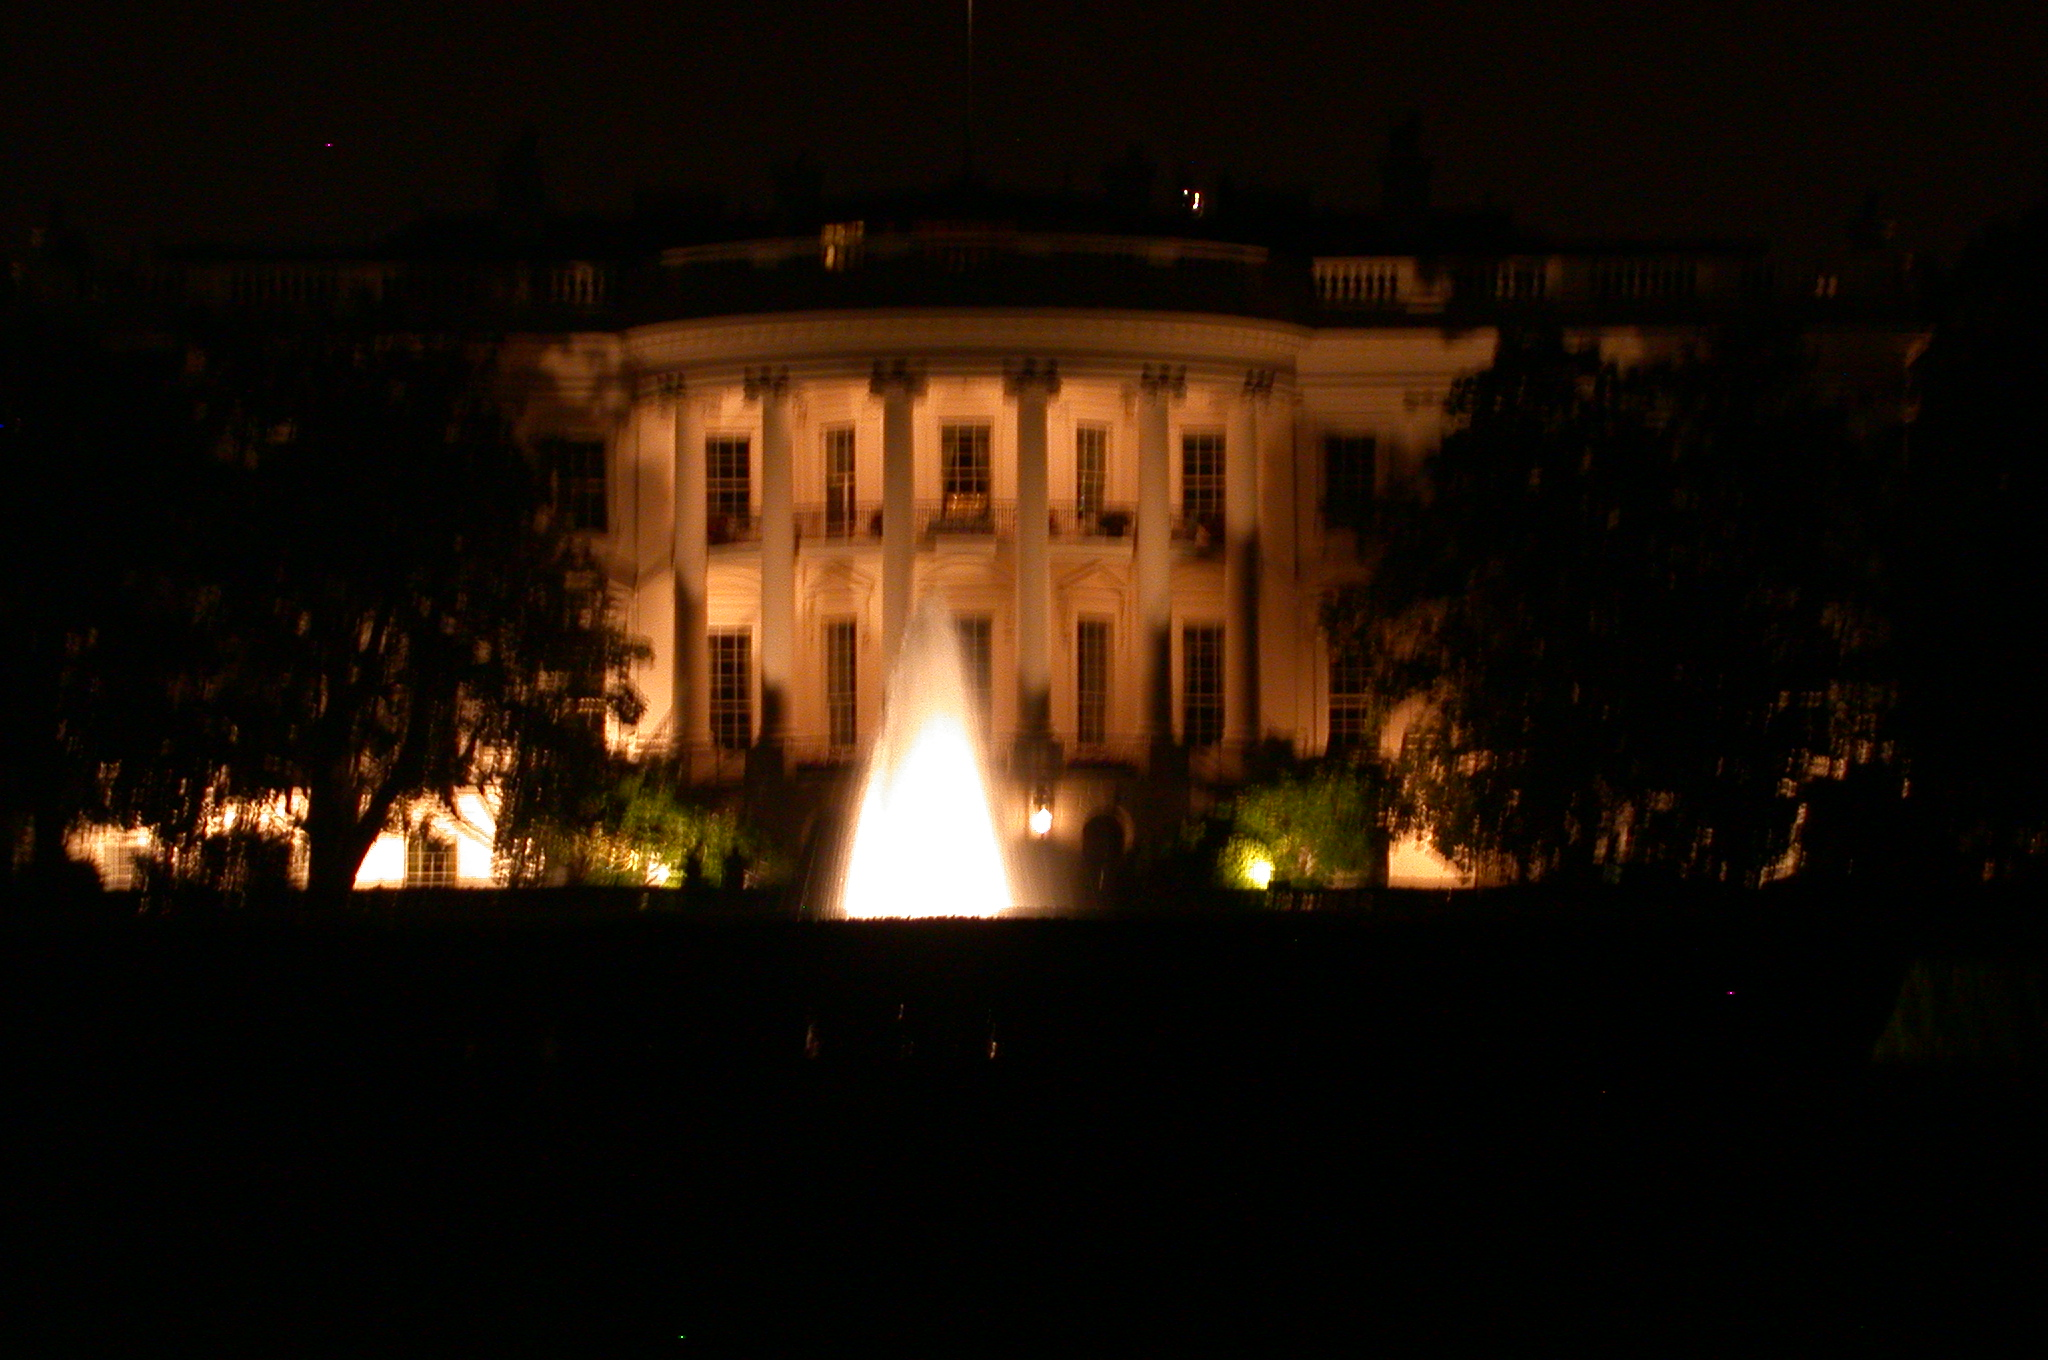 DSCN0218.jpg - The White House at night.